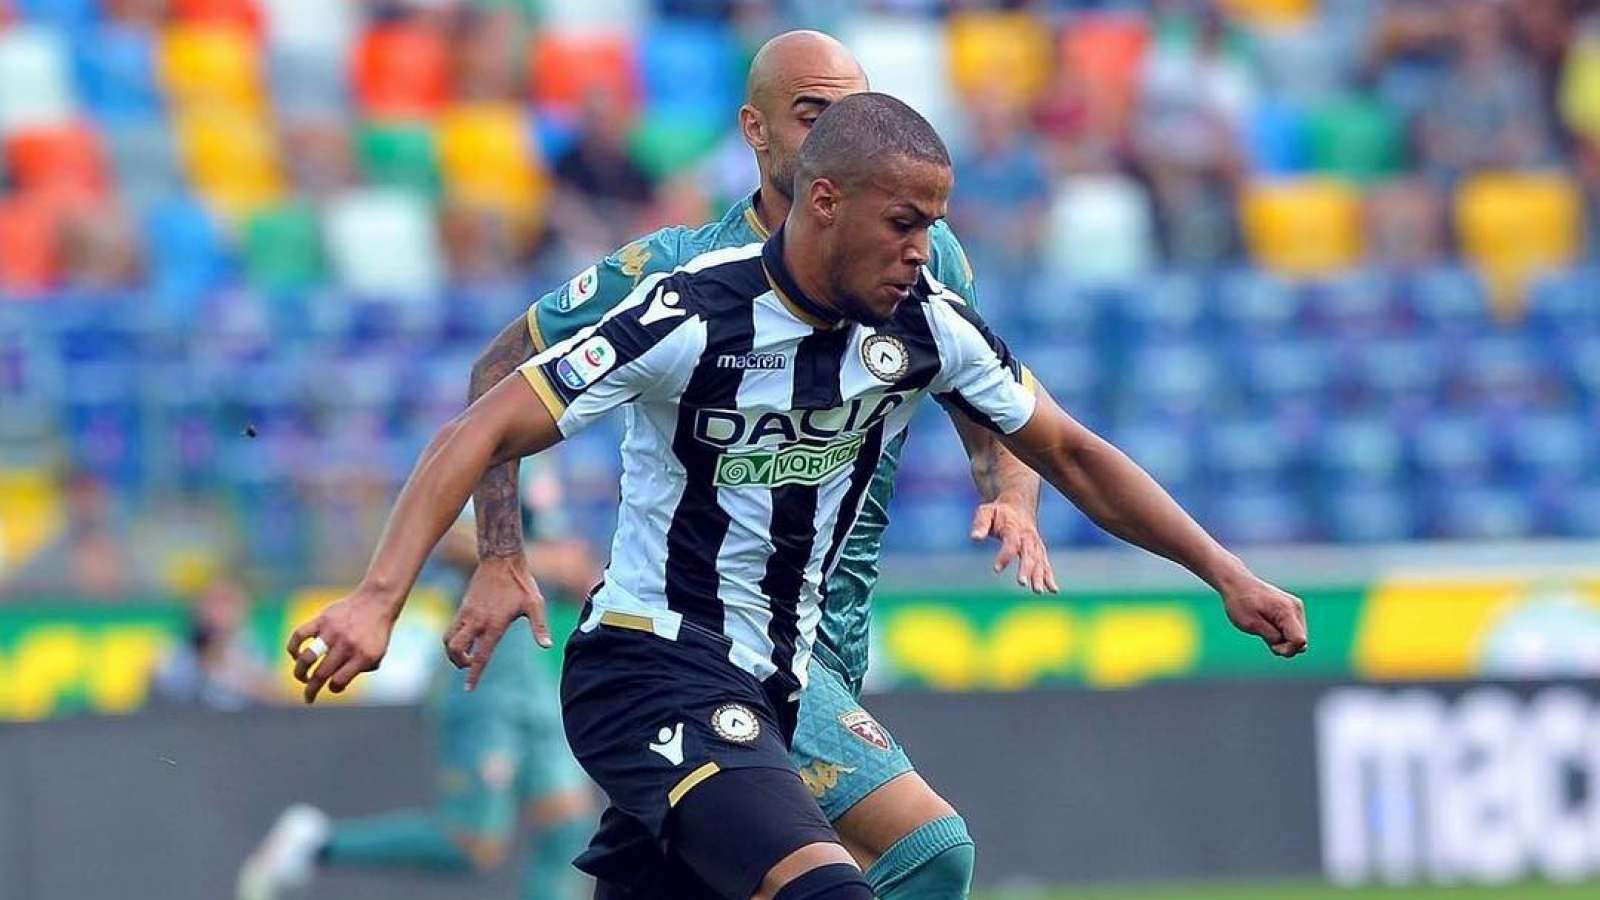 Troost-Ekong shines in Udinese's 2-0 win Over Cagliari